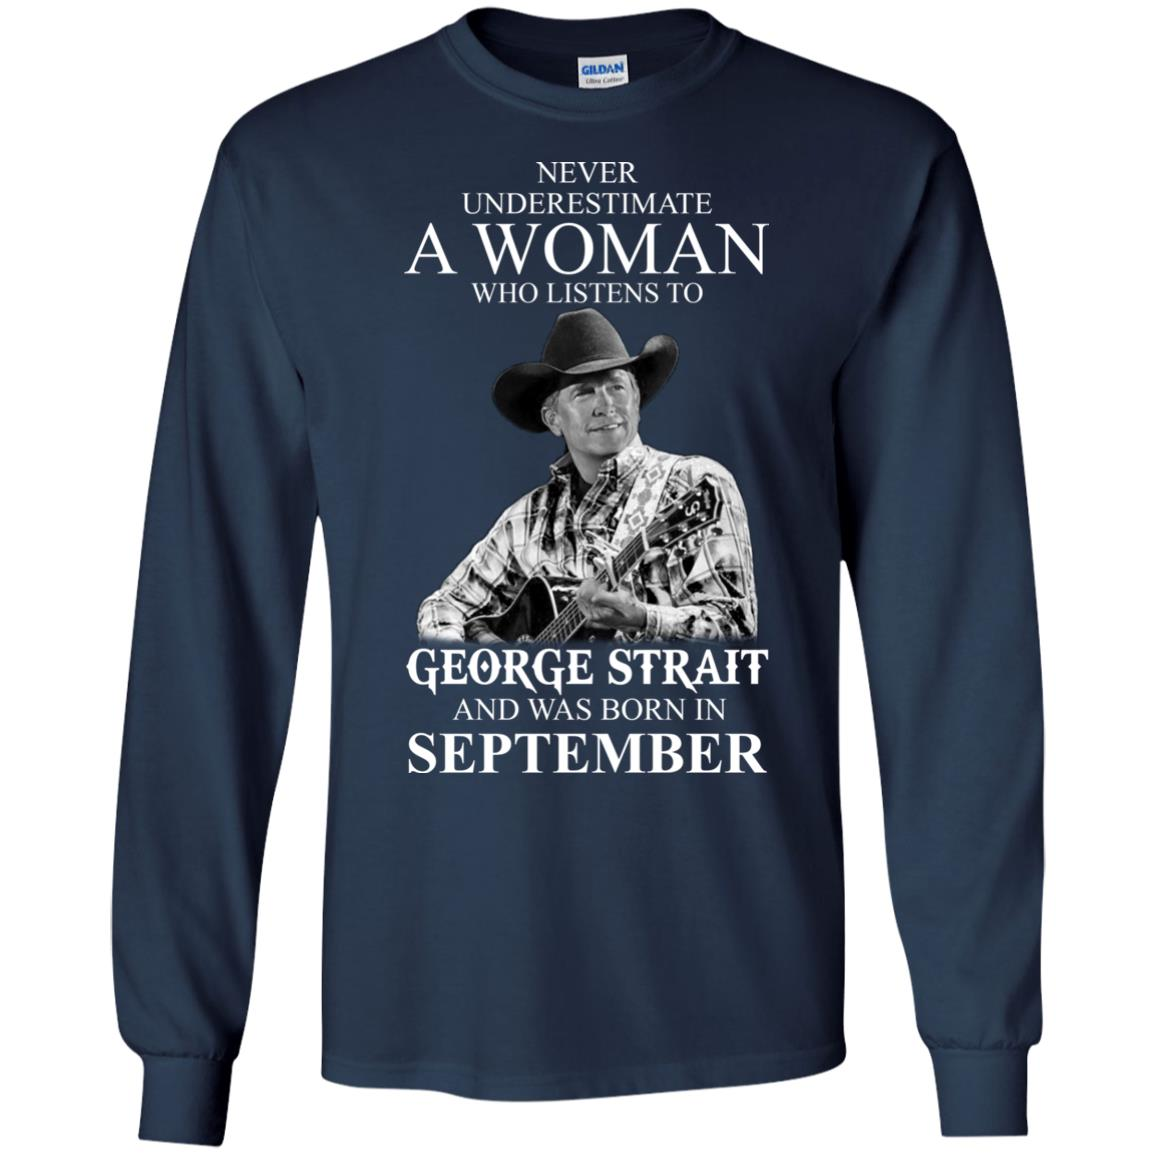 image 377 - Never Underestimate A Woman Who Listens To George Strait And Was Born In September shirt